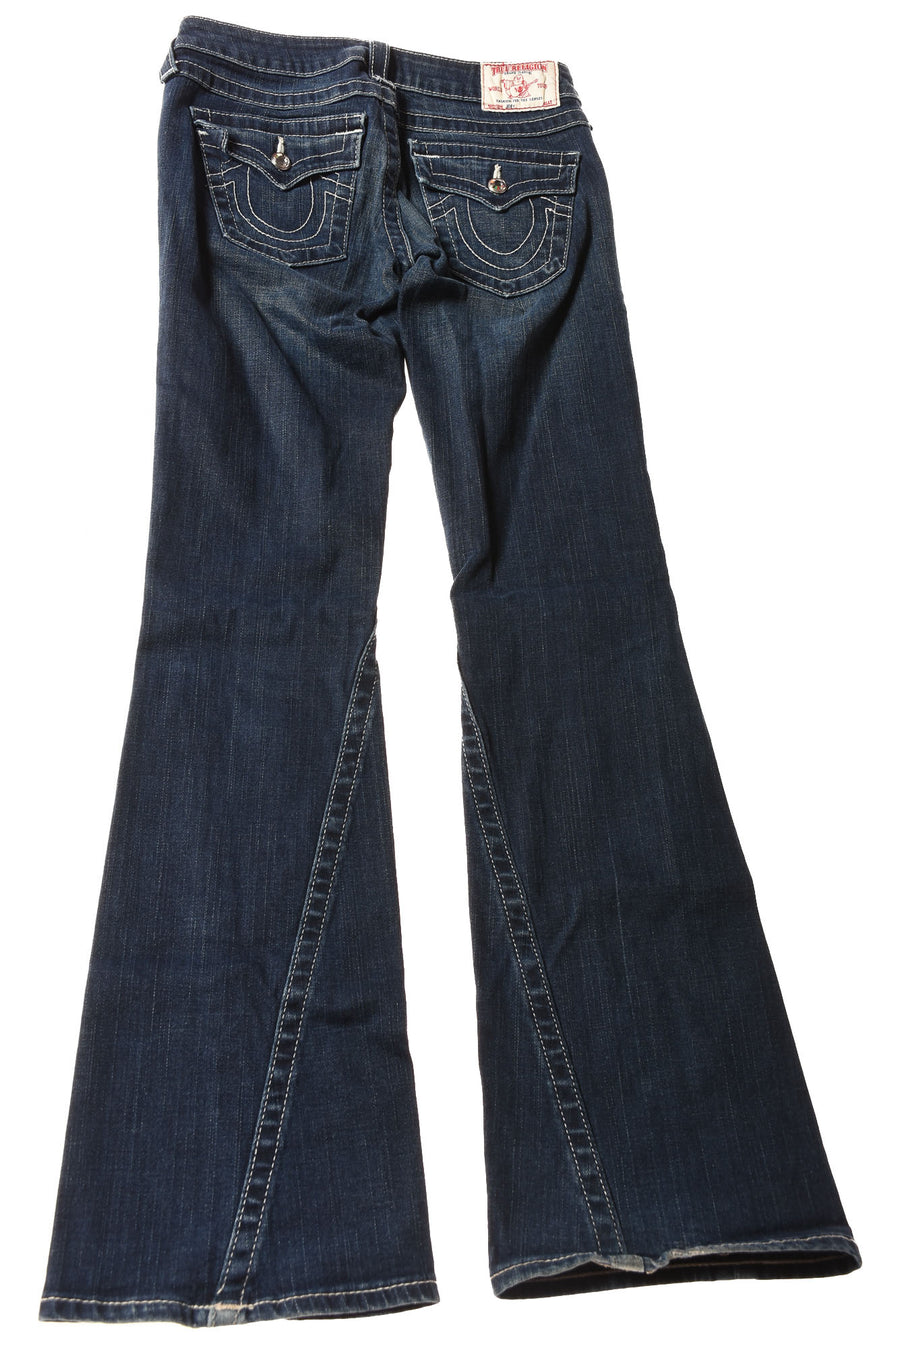 USED True Religion Women's Jeans 26 Blue